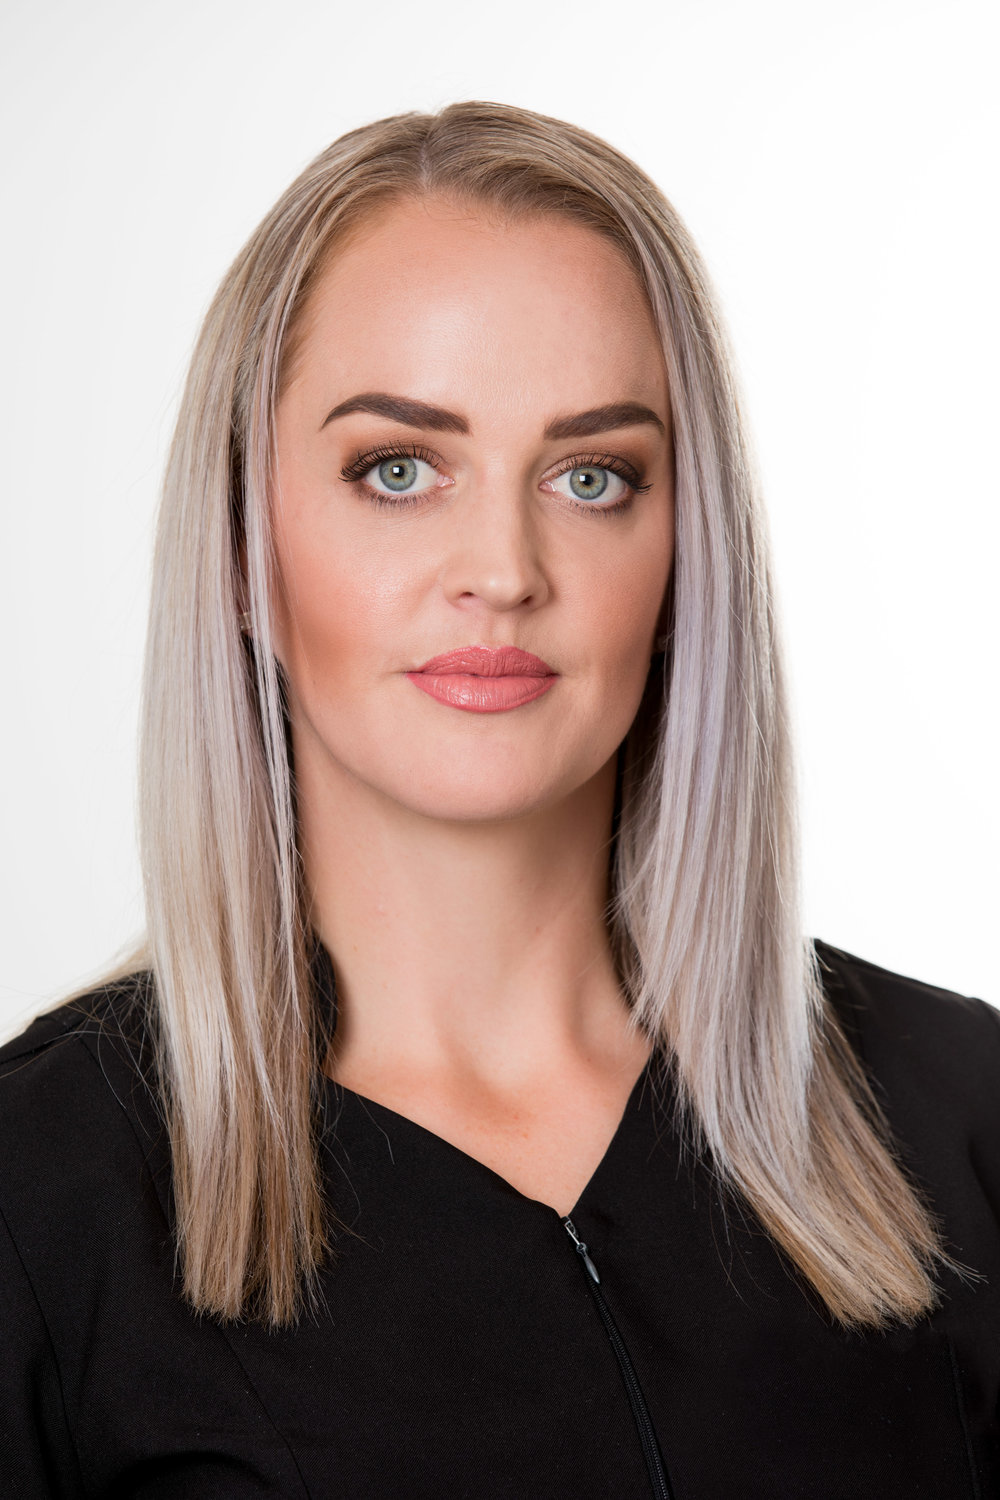 LEAH - Salon Owner and Senior AestheticianAfter 16 years involvement in the beauty industry, this salon is an amalgamation of everything I have learned. Juggling three boys and family life is always a challenge, but winning the 2013 New Zealand Salon of the Year and Business Development Award was a great reward for all our hard work. From my years as a skincare consultant with Estee Lauder to training to be a beauty therapist, 11 years as a qualified aesthetician and my work as a professional make-up artist, I just love being able to help clients look and feel great every time they visit us.